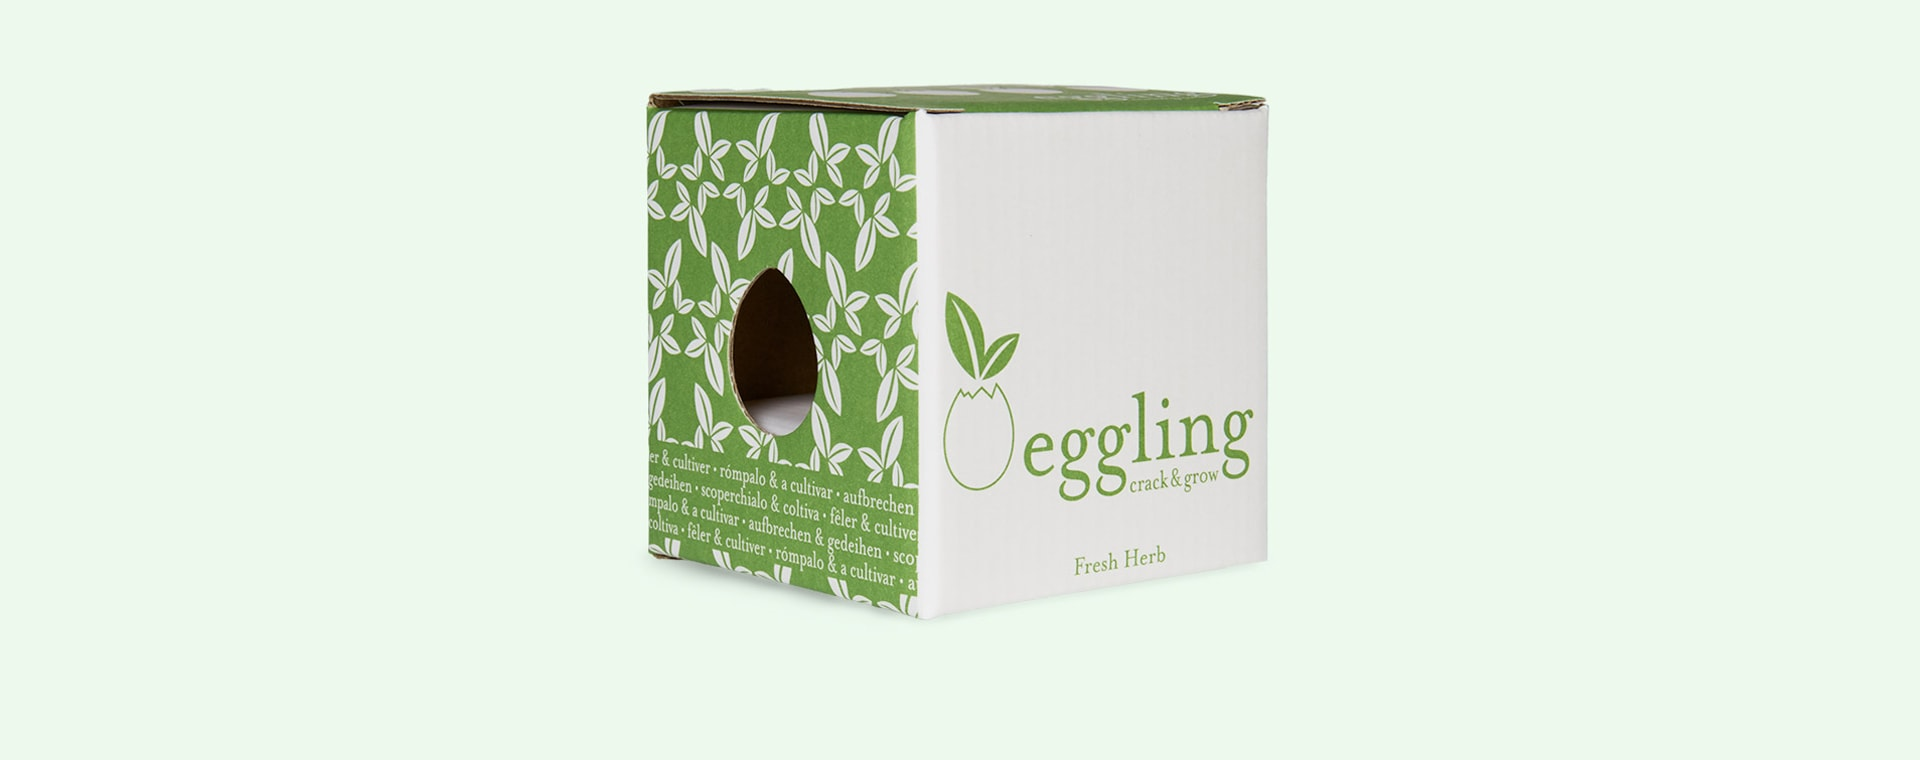 Basil Noted Eggling Crack & Grow